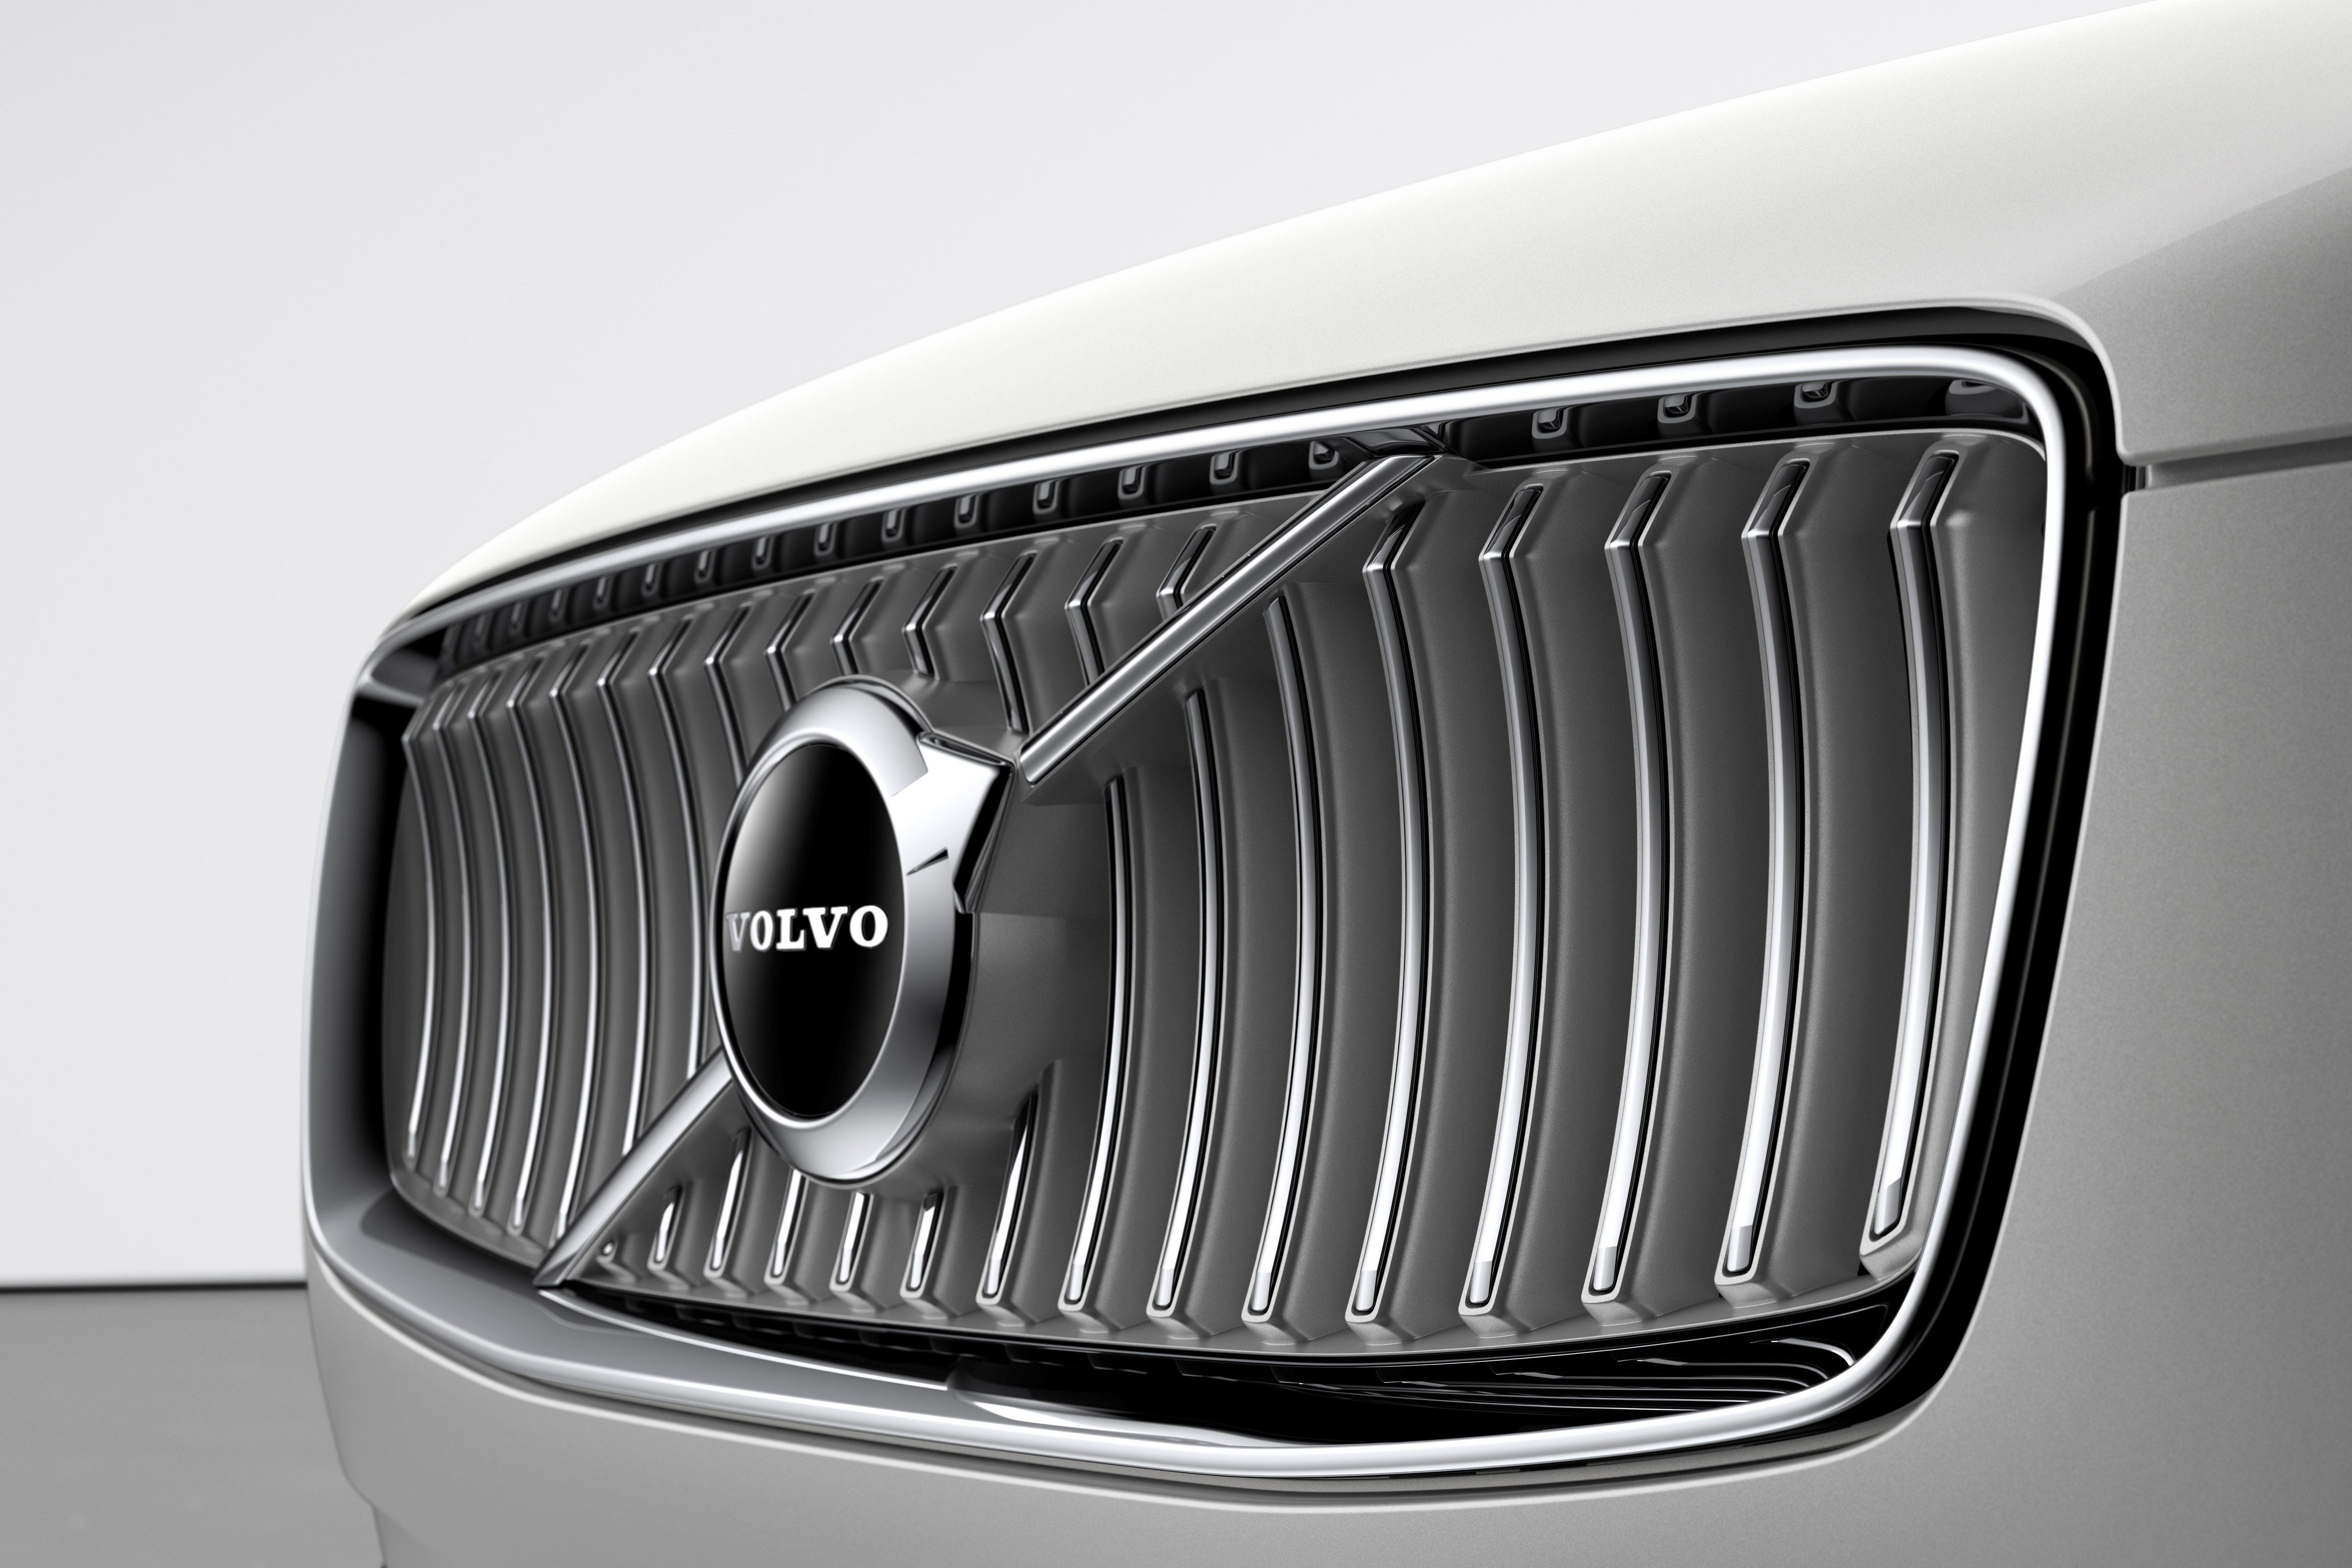 The refreshed Volvo XC90 Inscription T8 Twin Engine in Birch Light